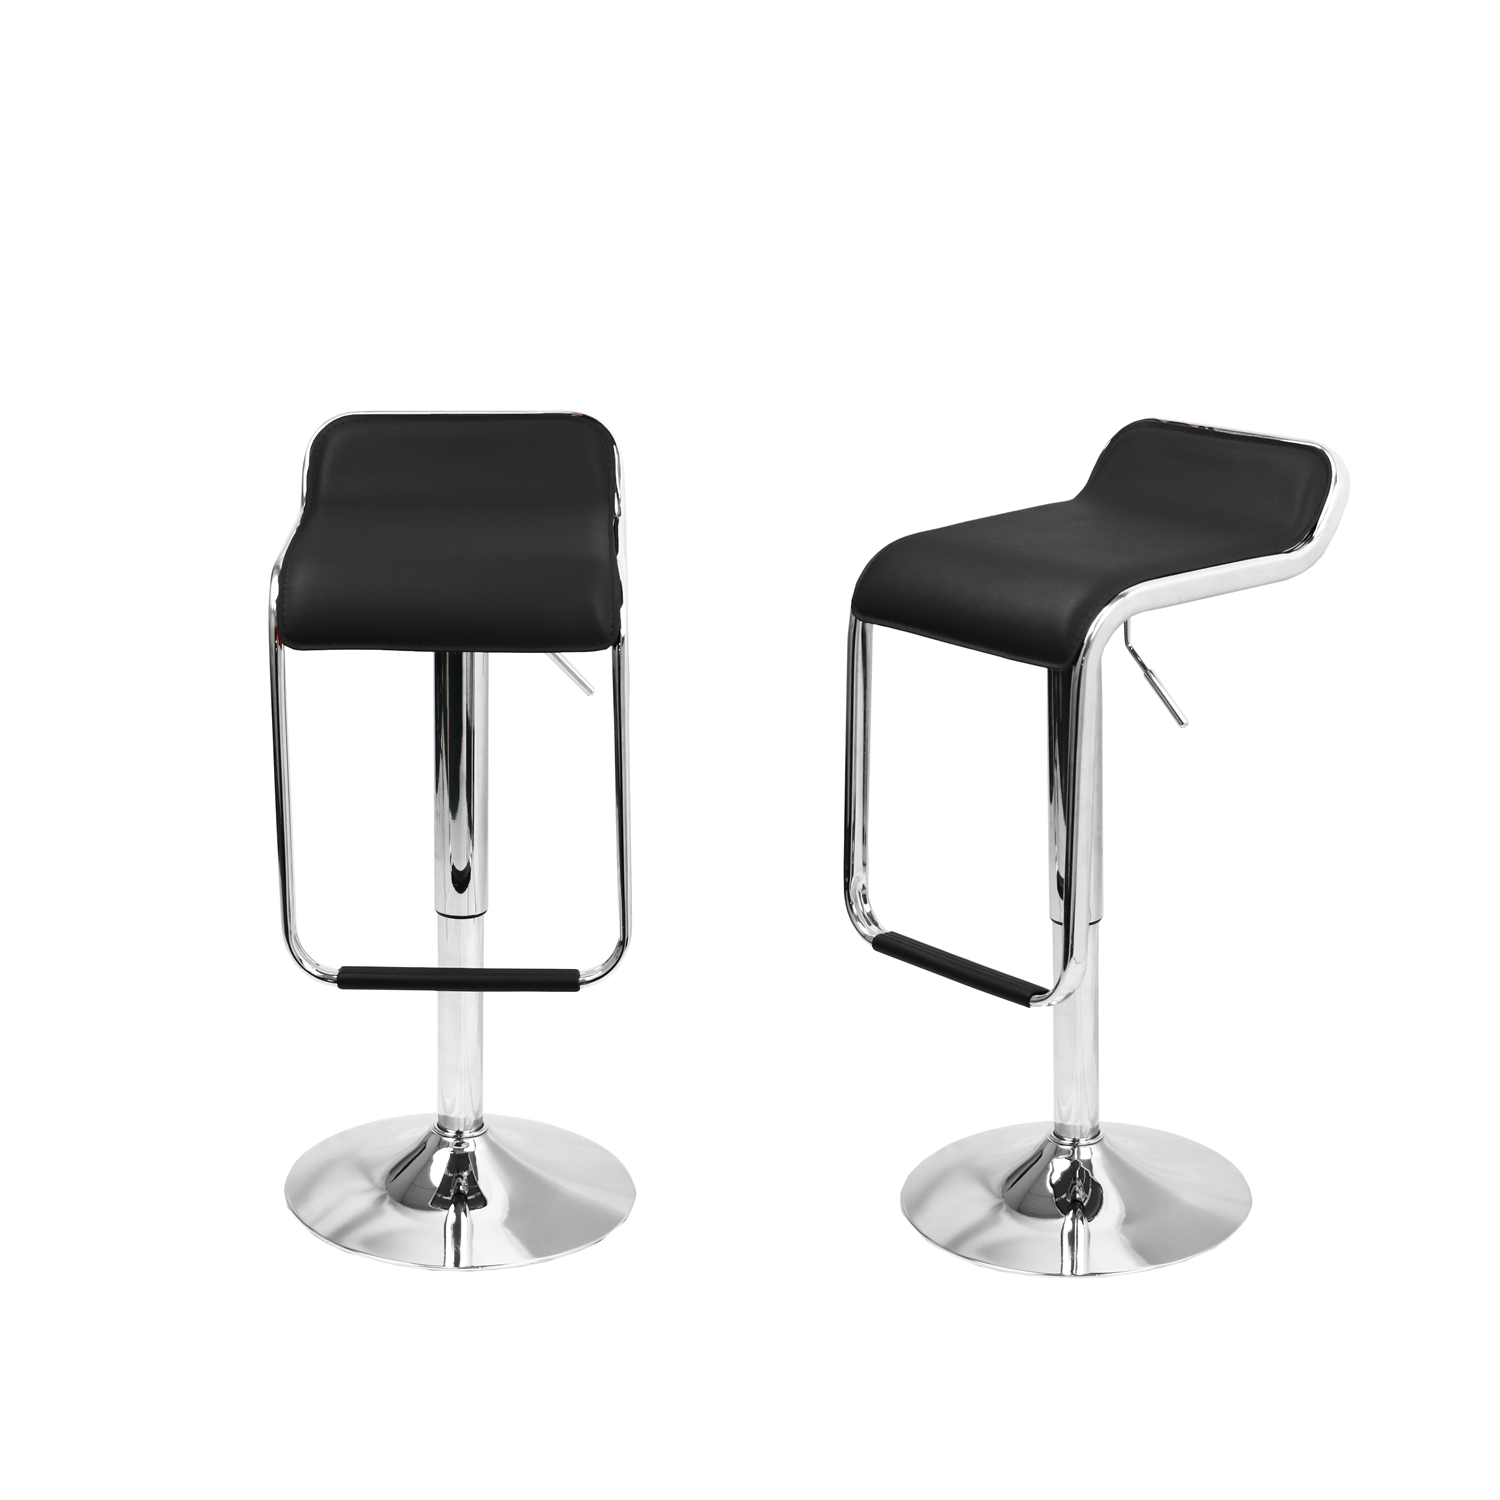 2pc Modern Square Design Counter Stools Bar Stools Kitchen Stools with Backs